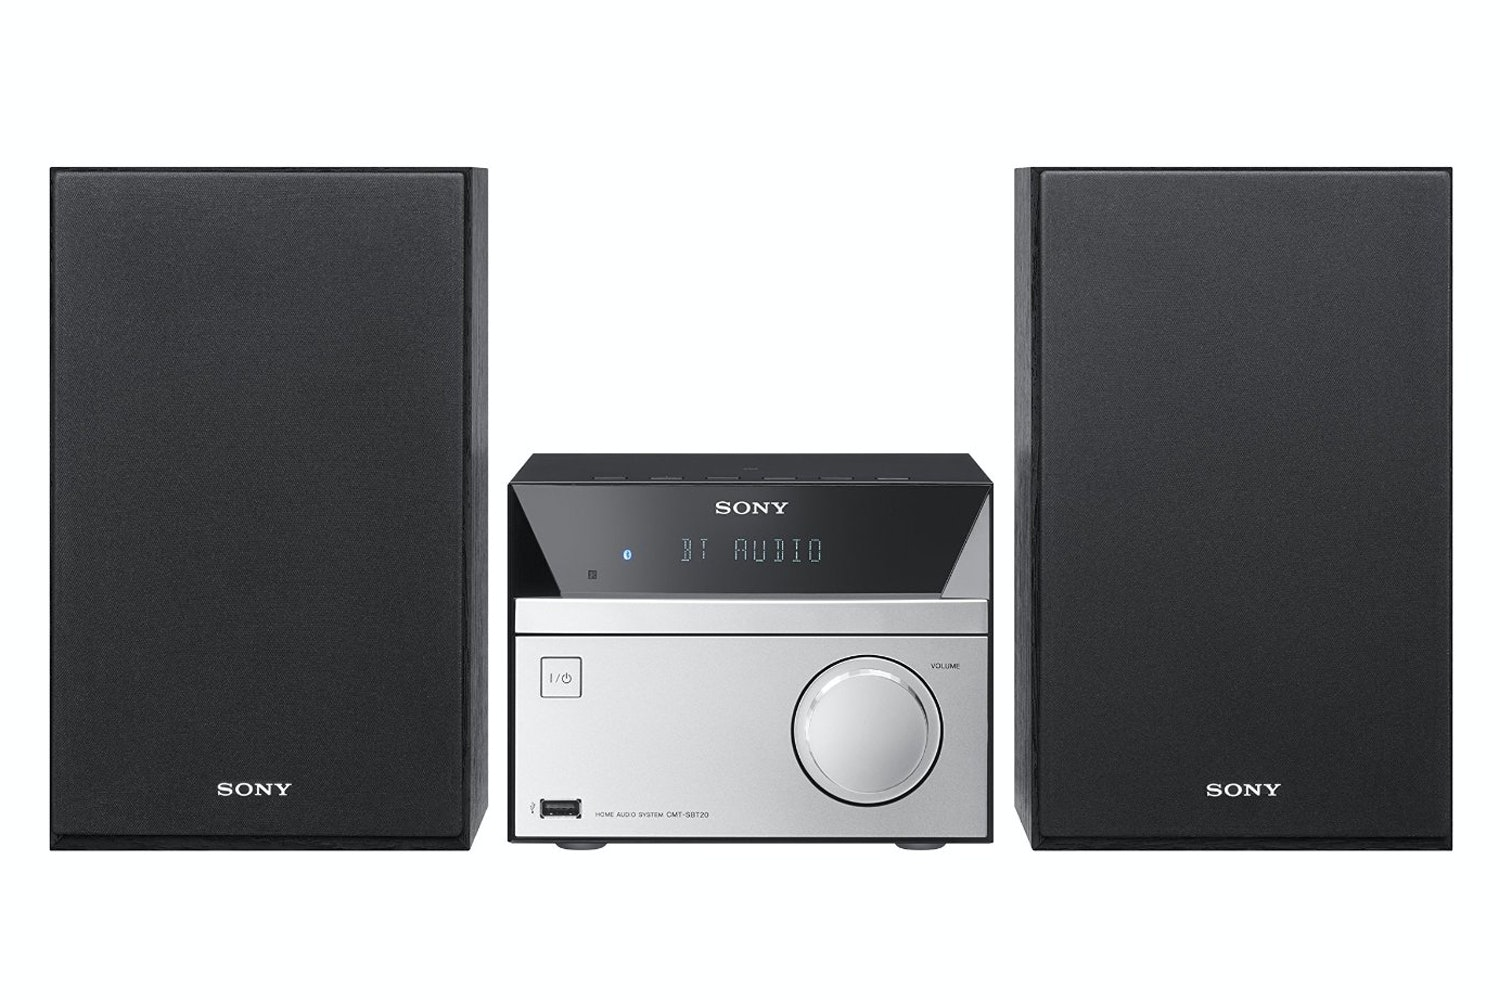 Sony CMT-SBT20 Micro HI-FI System with Bluetooth | Black